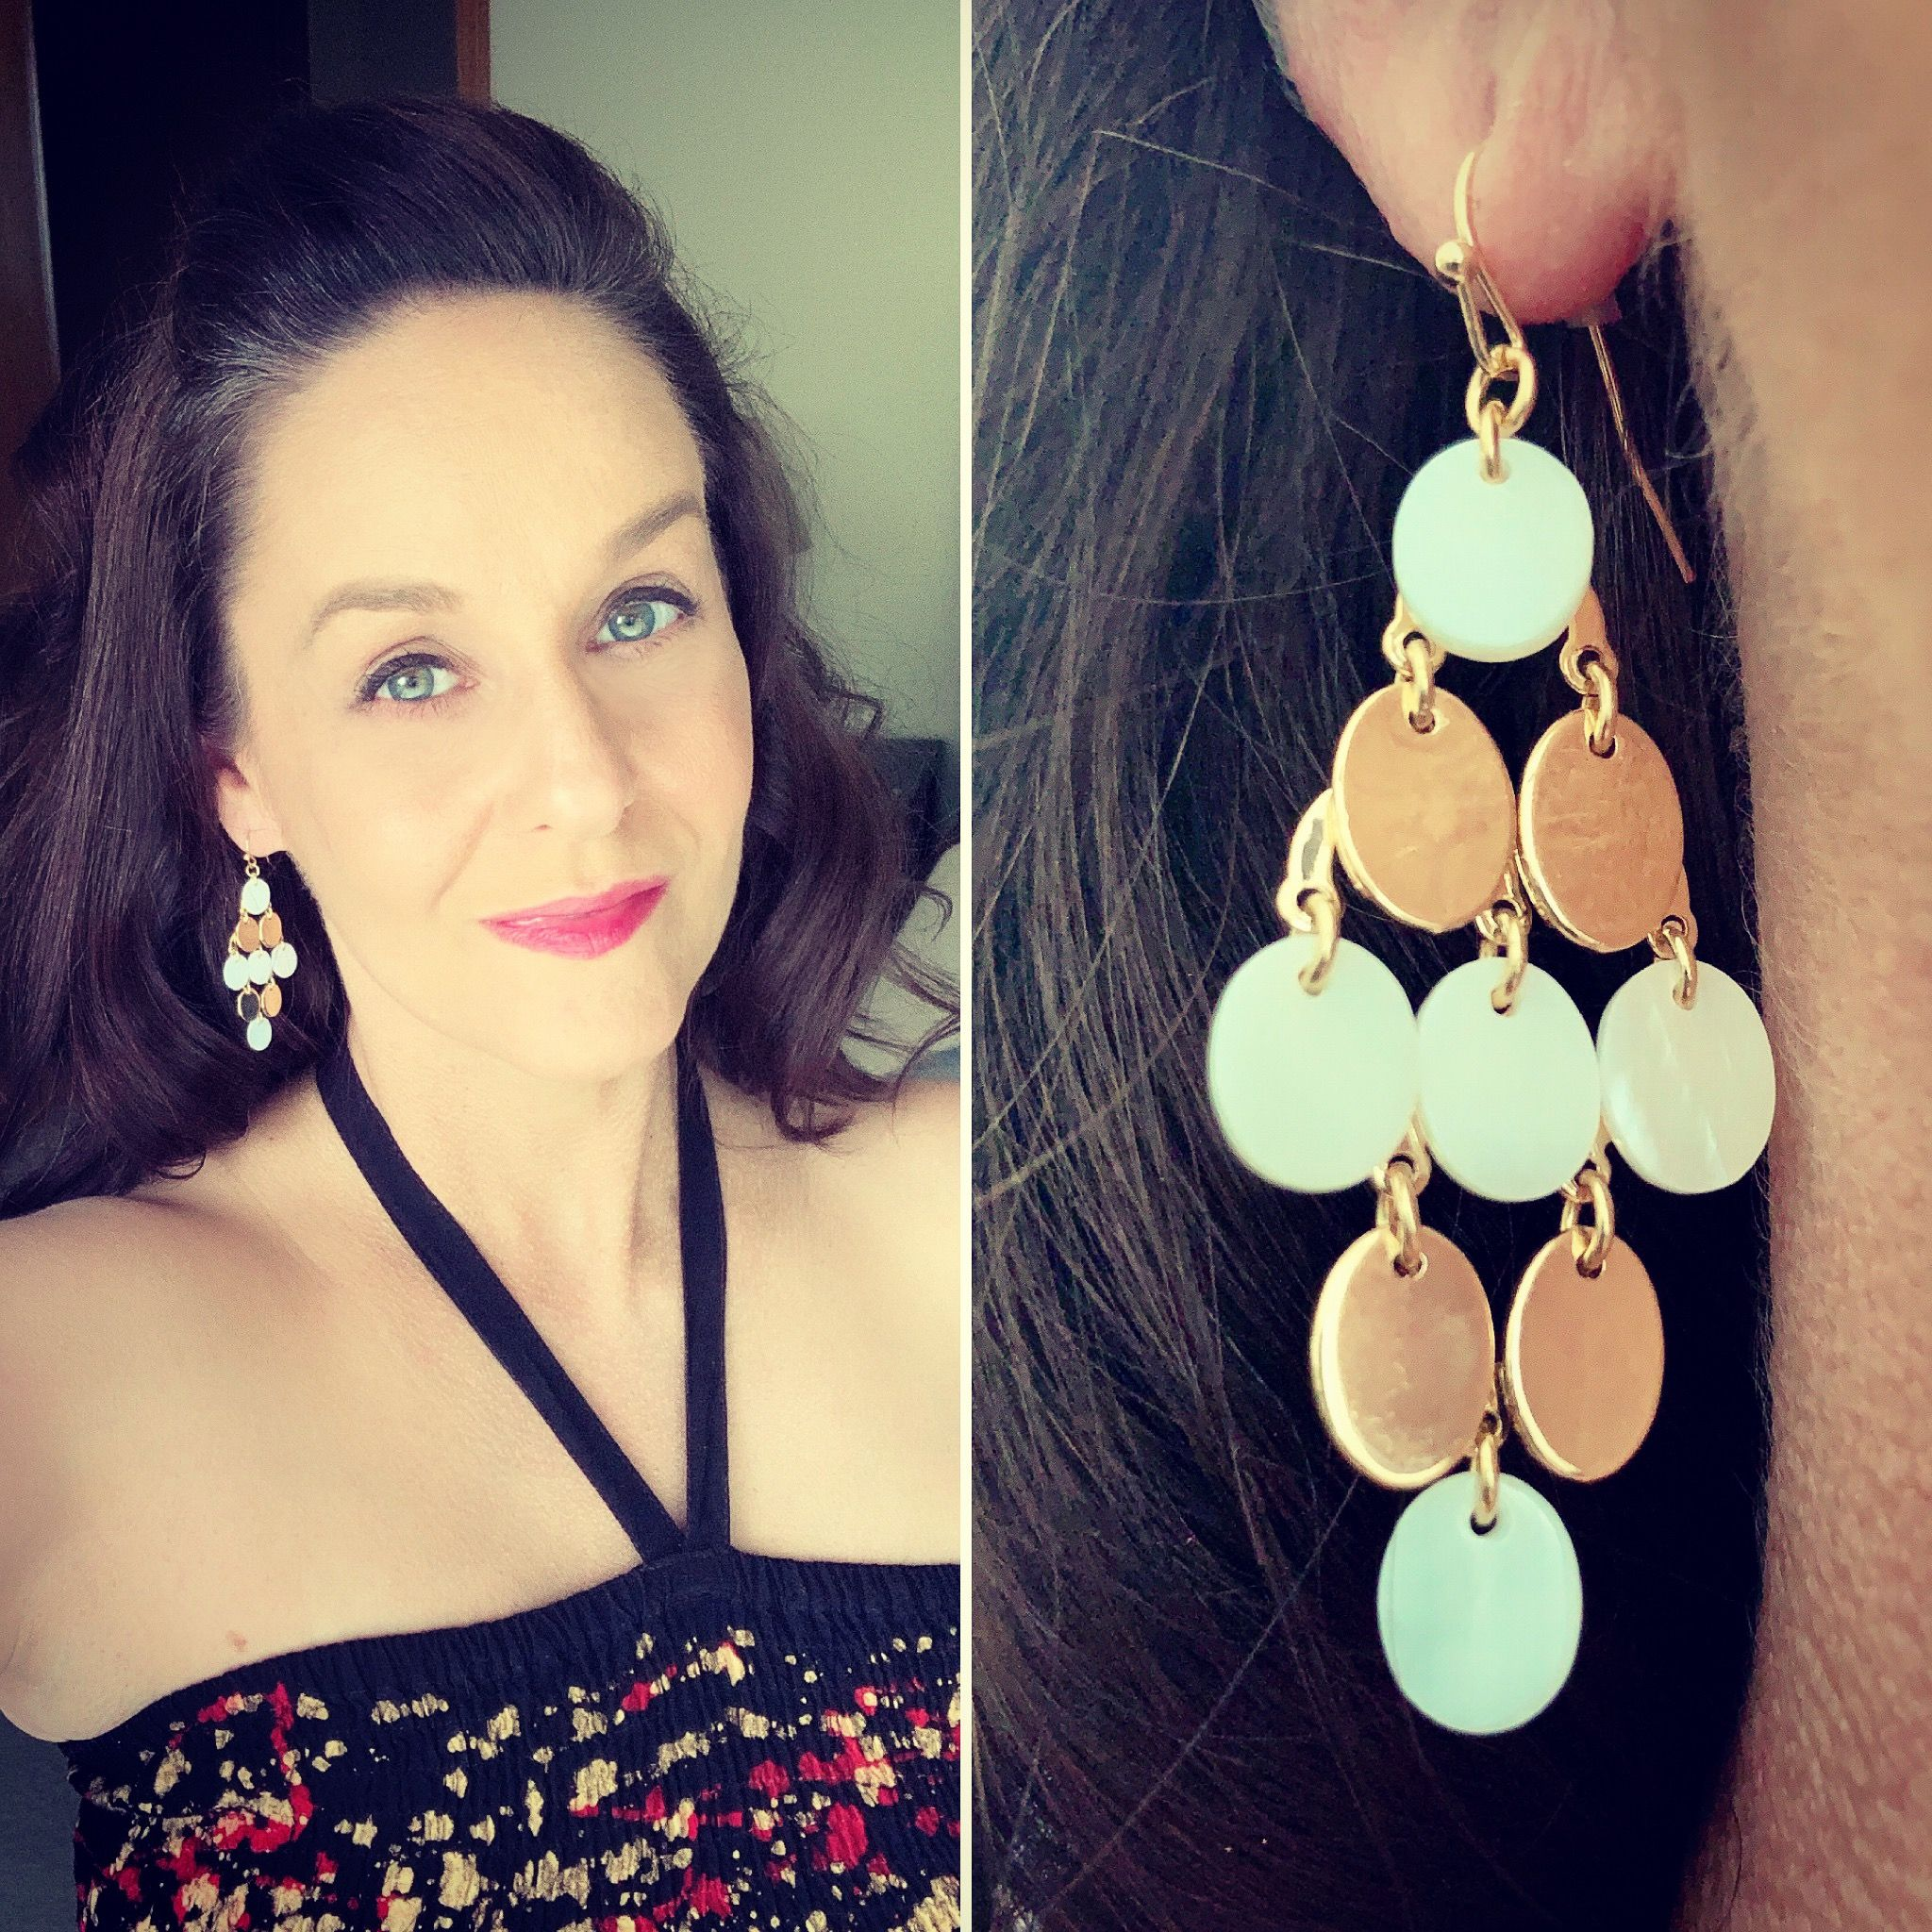 Heading Out To Dinner With The Hubs And Some Of His Team At Work It Ll Be My First Time Meeting Them Even Though H Kite Earrings Mother Pearl Jewelry Junkie